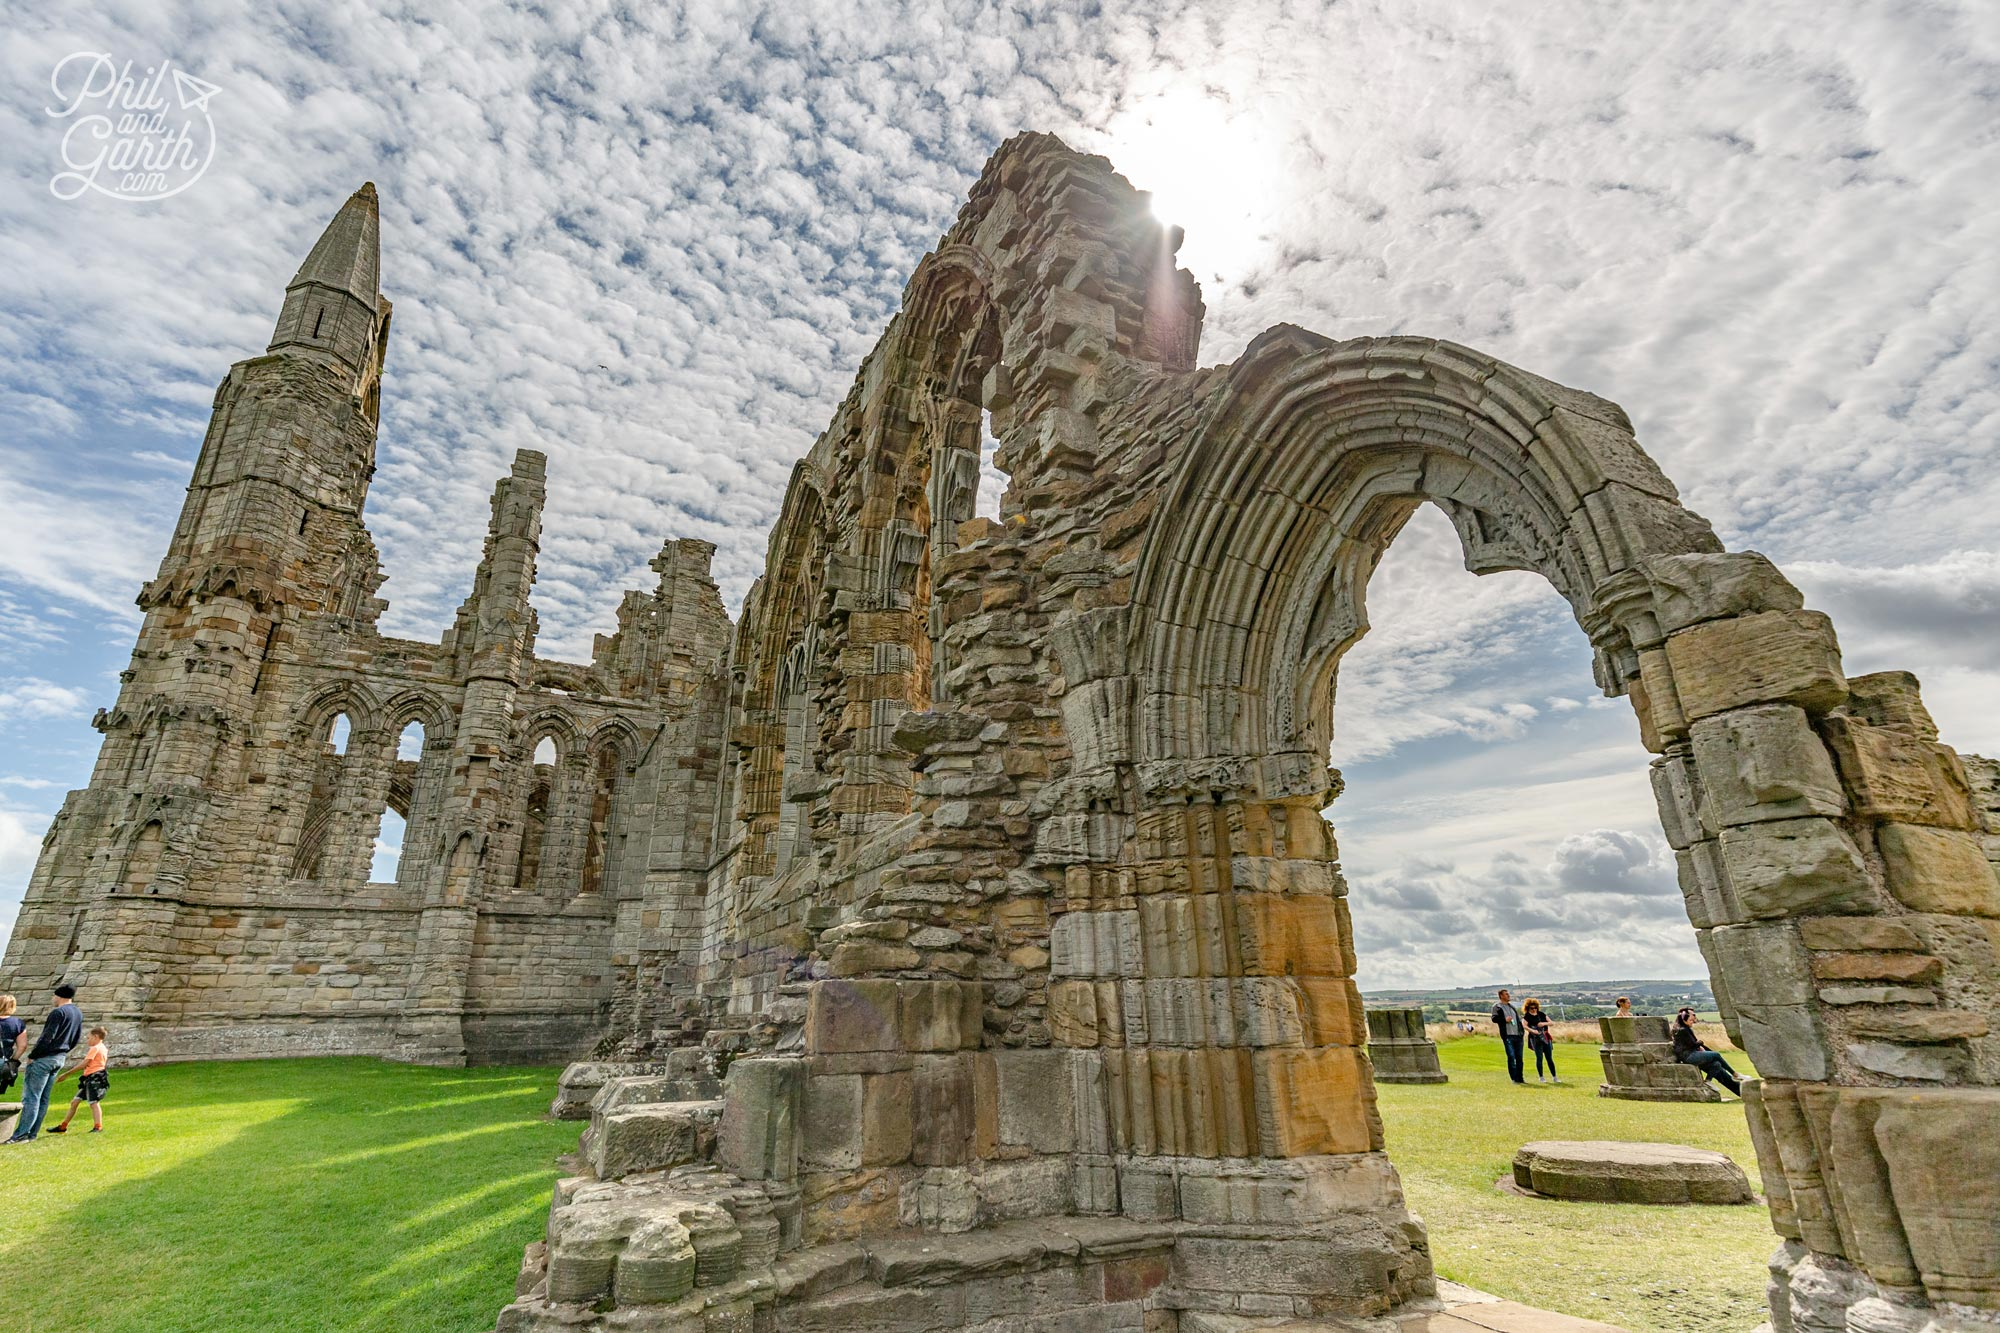 The atmospheric Gothic ruins of Whitby Abbey overlooking the North Sea